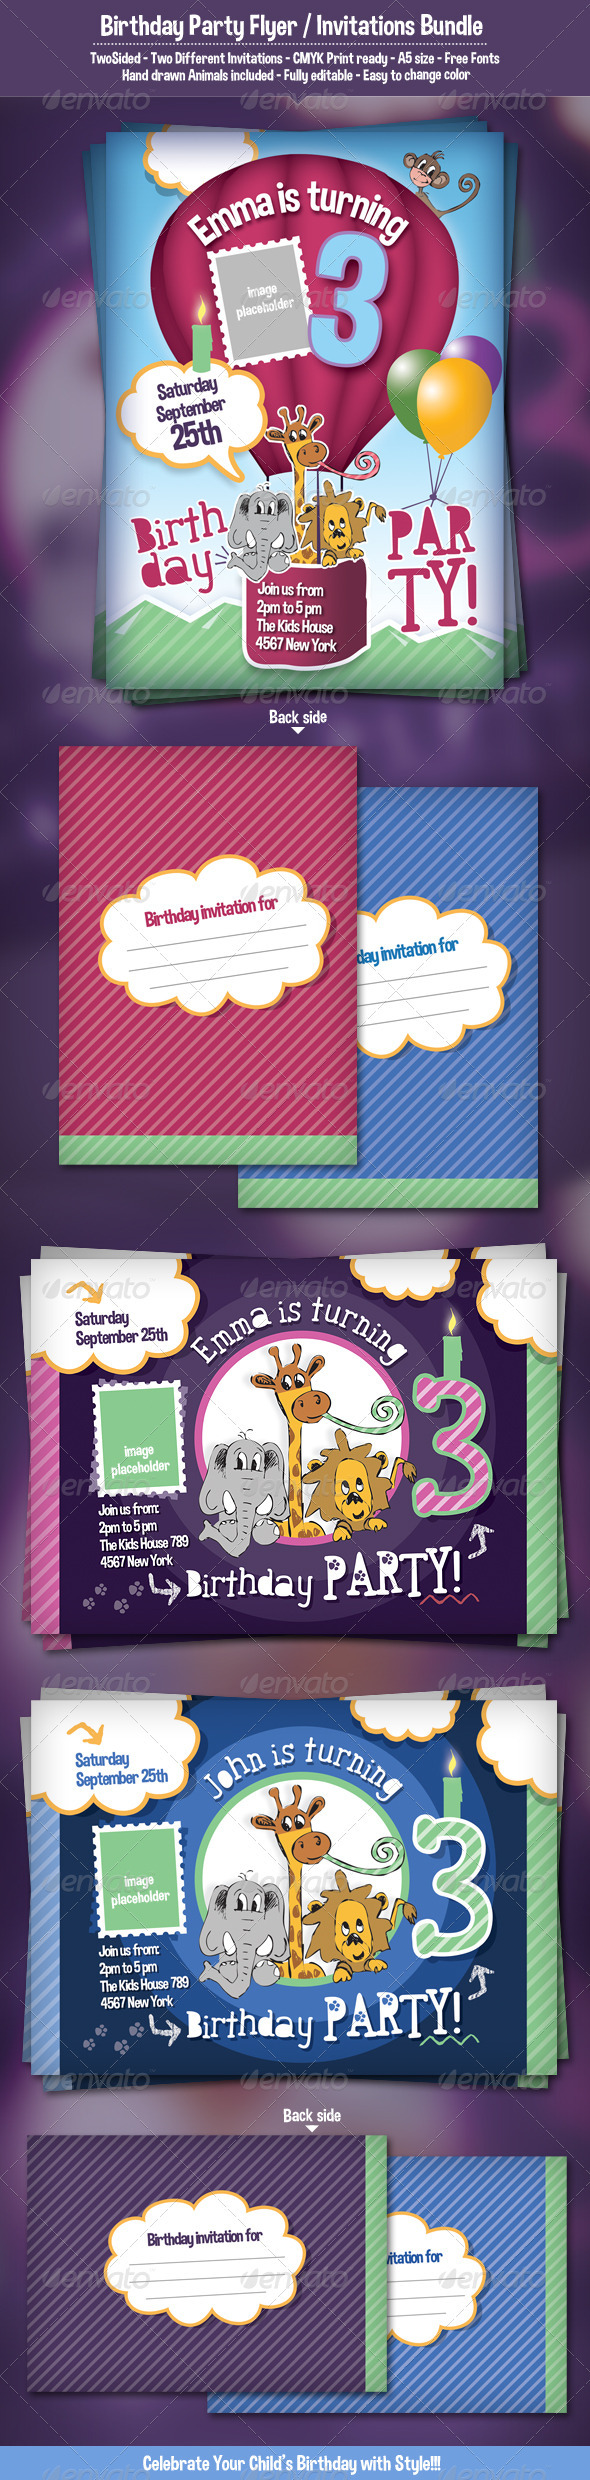 GraphicRiver Birthday Party Flyer Invitations Bundle 3411704